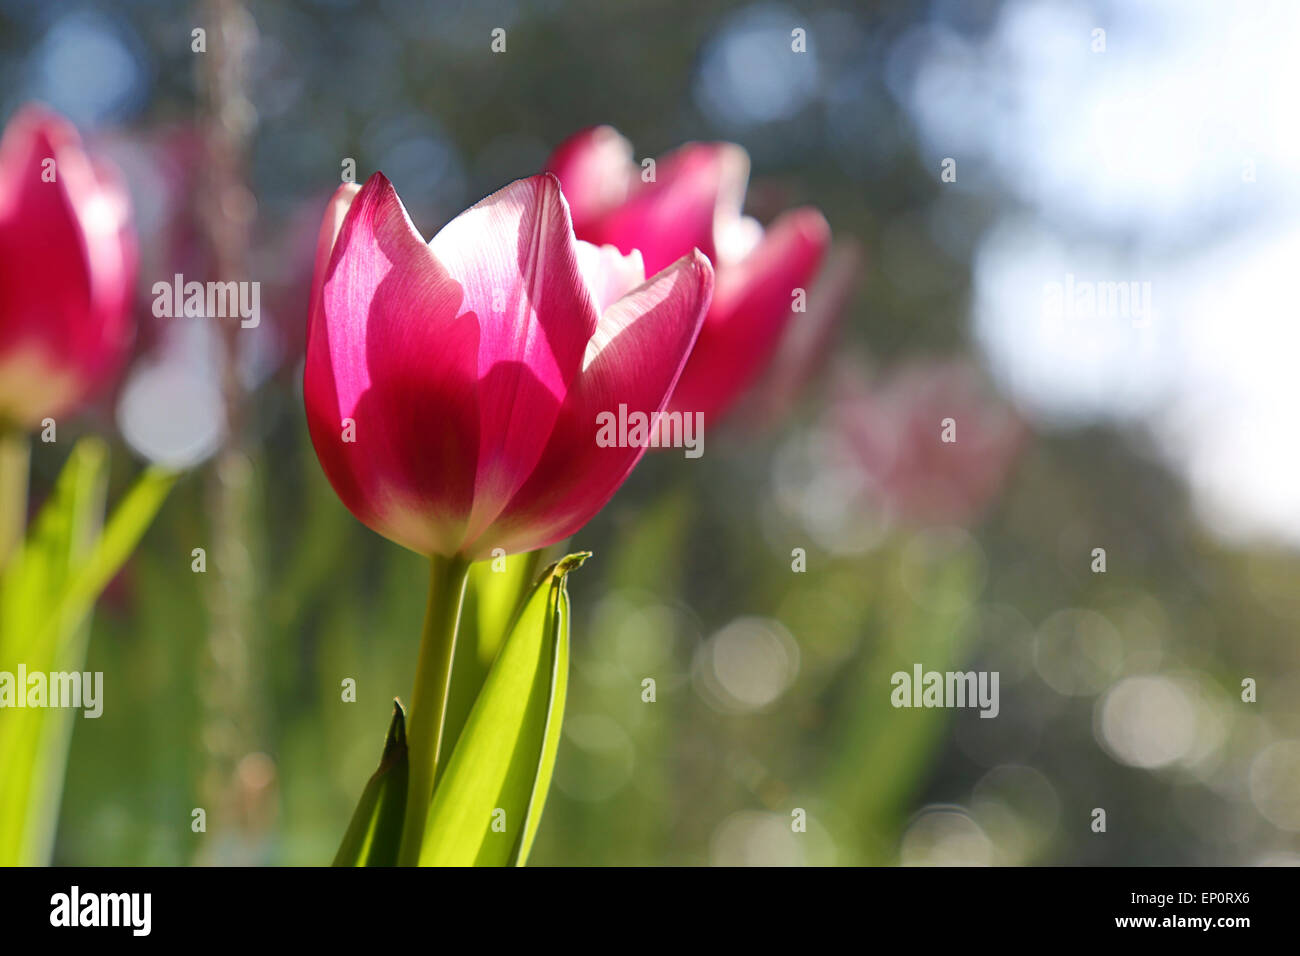 Pink Tulip flowers lit from behind. Blurred trees behind - Stock Image